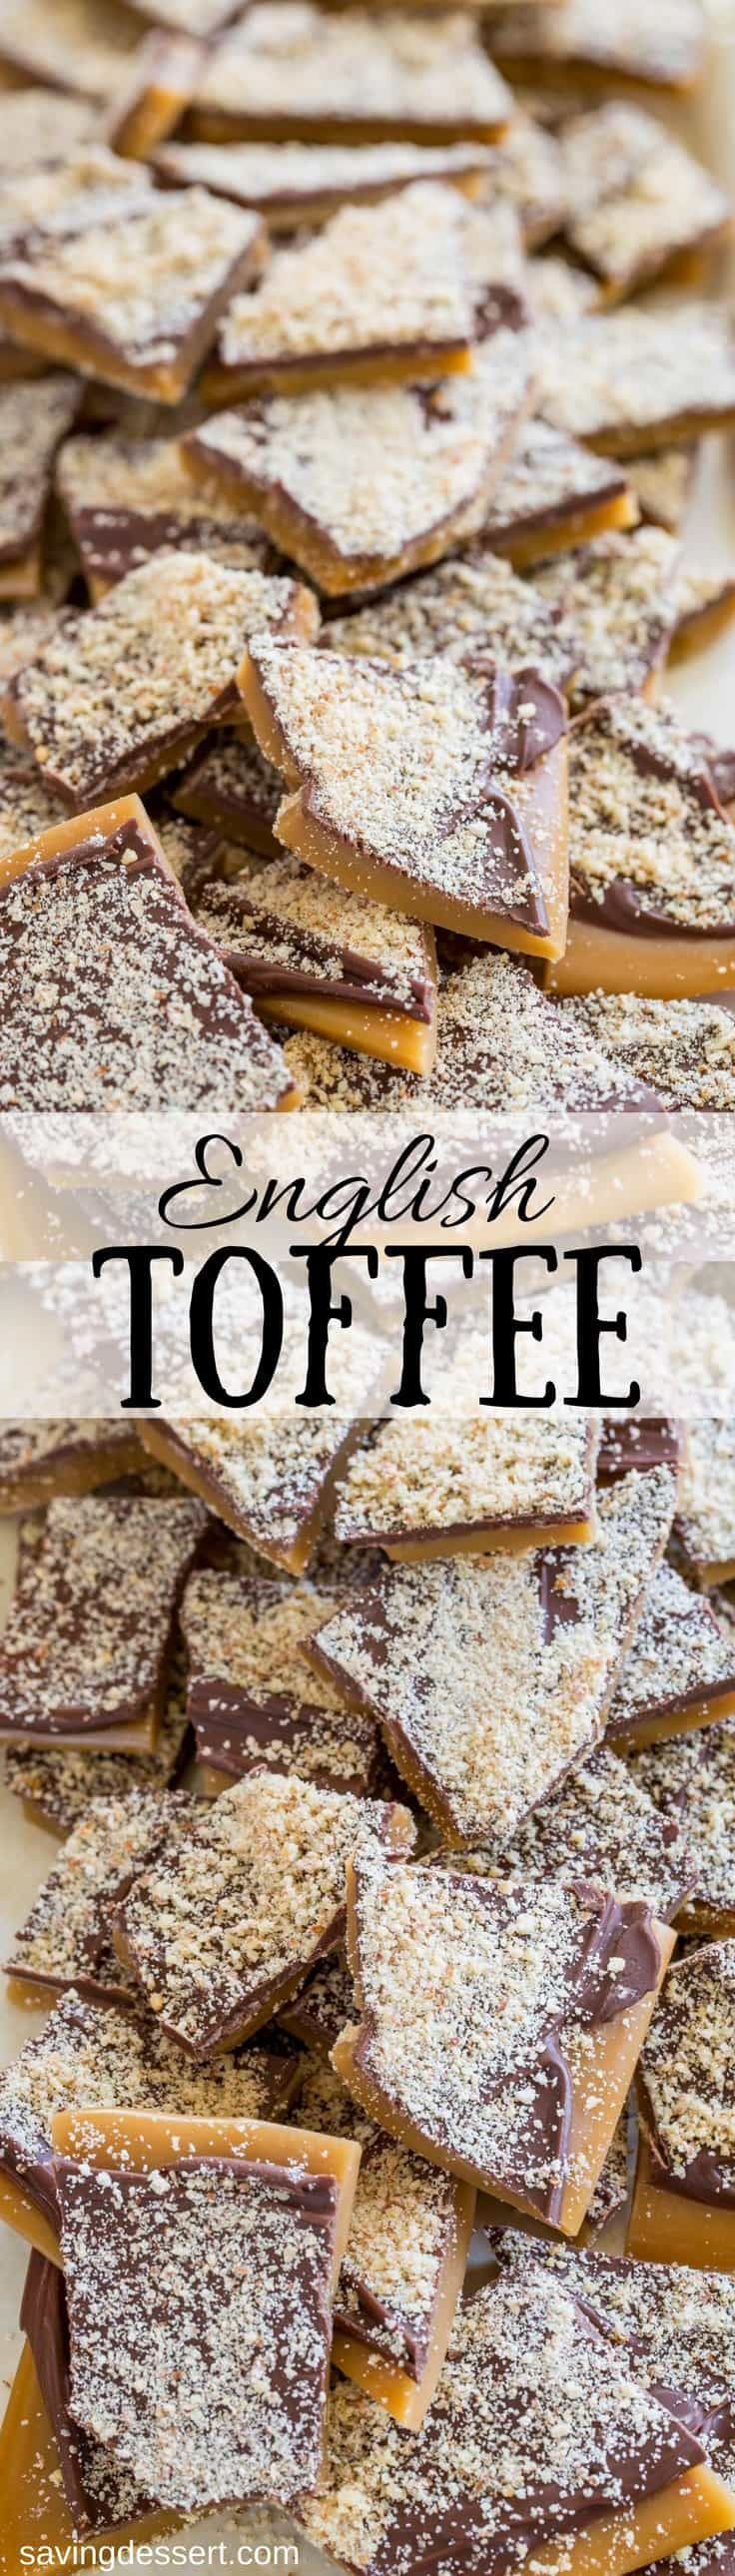 Easy to make and perfect for gifting, Old Fashioned English Toffee dusted with grated almonds - a family favorite for generations! www.savingdessert.com